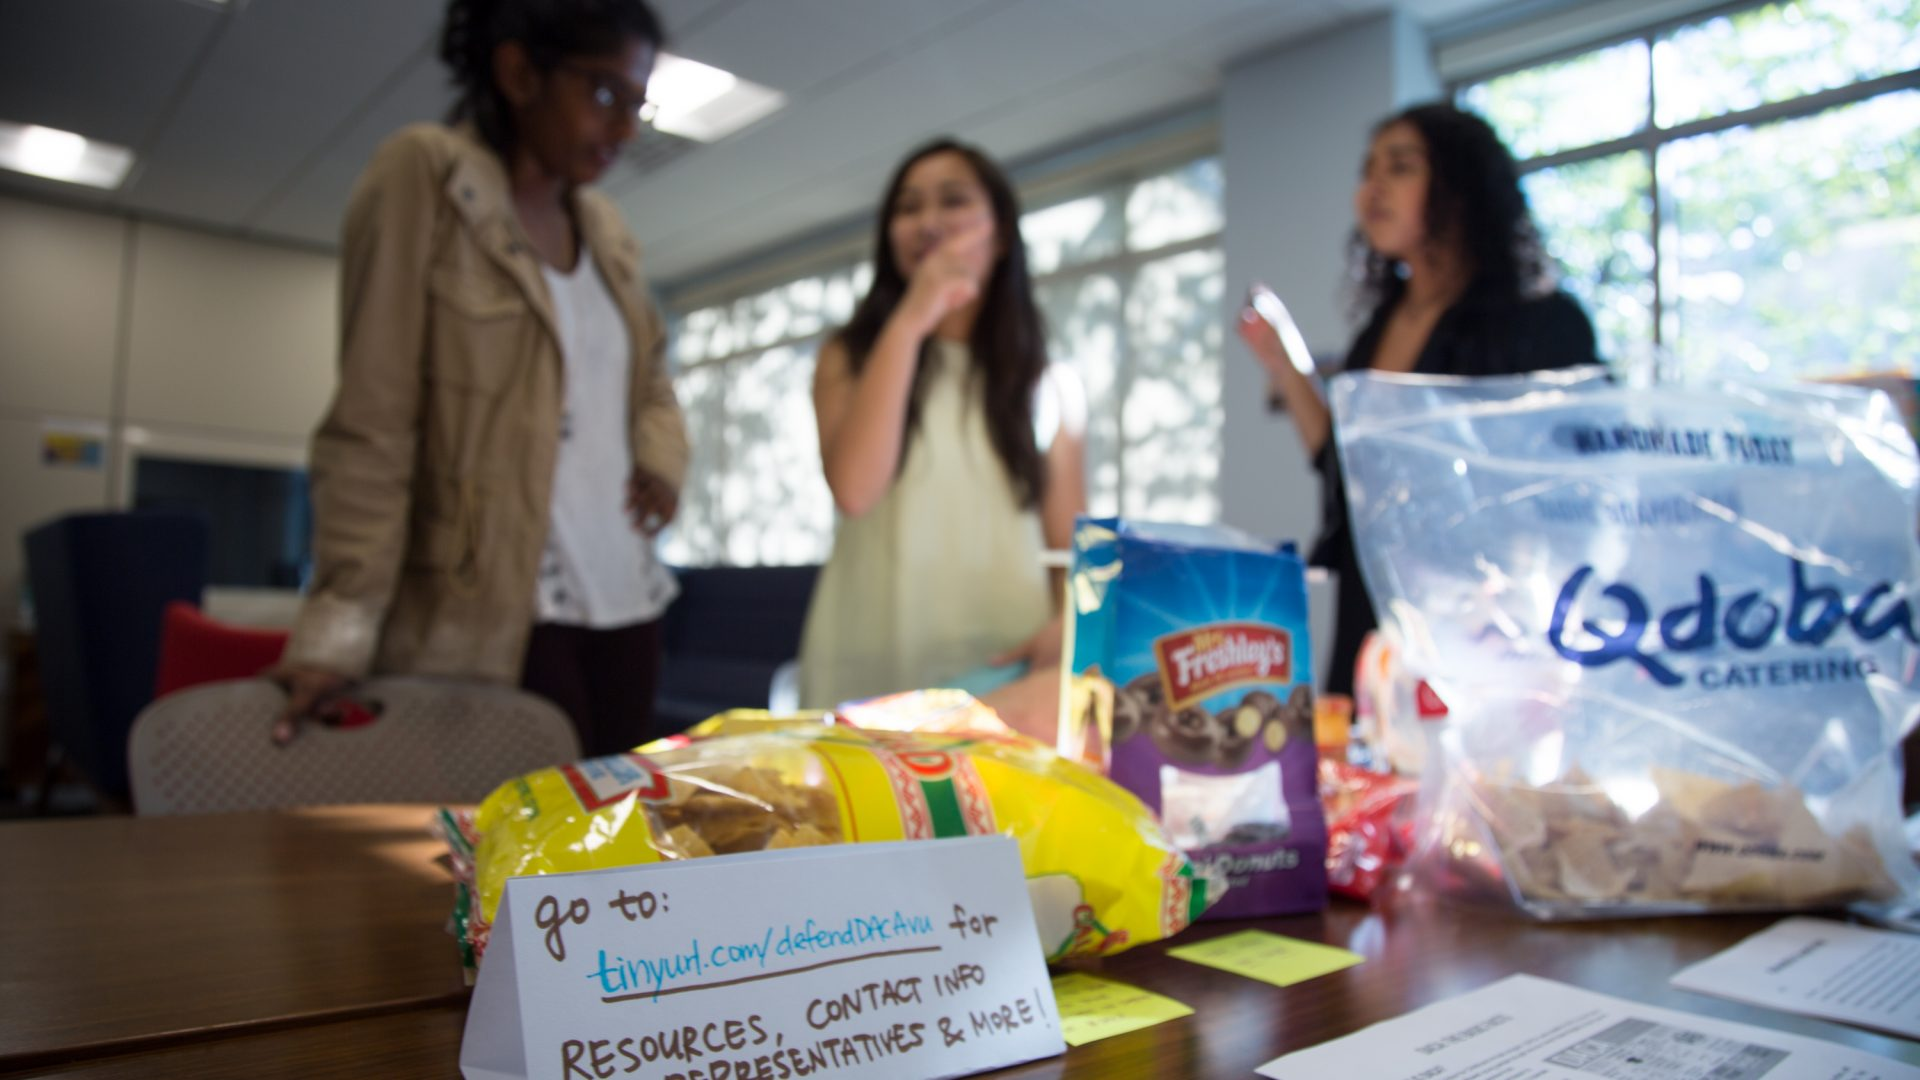 Event organizers offered snacks and other refreshments to participants.